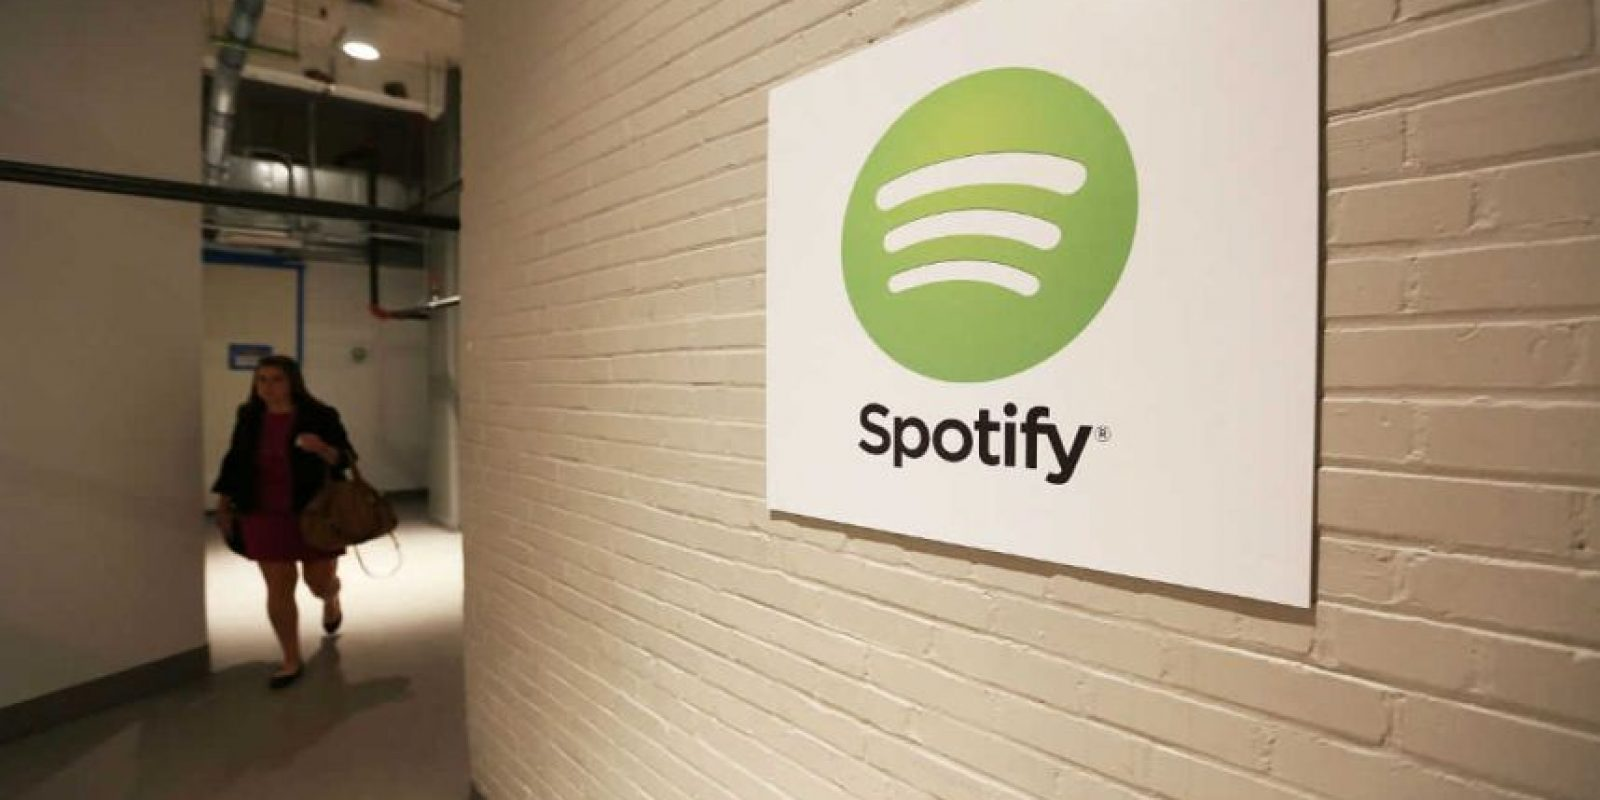 Spotify prefiere prevenir que lamentar. Foto: Getty Images. Imagen Por: Getty